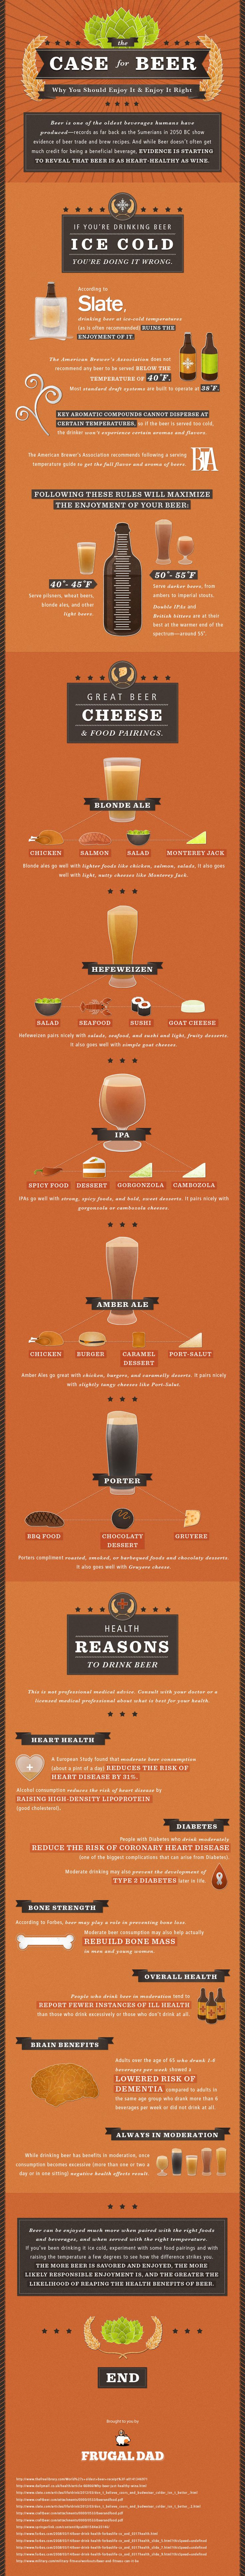 The Health Benefits of Drinking Beer, Infographic...as if I needed more reasons to drink beer...